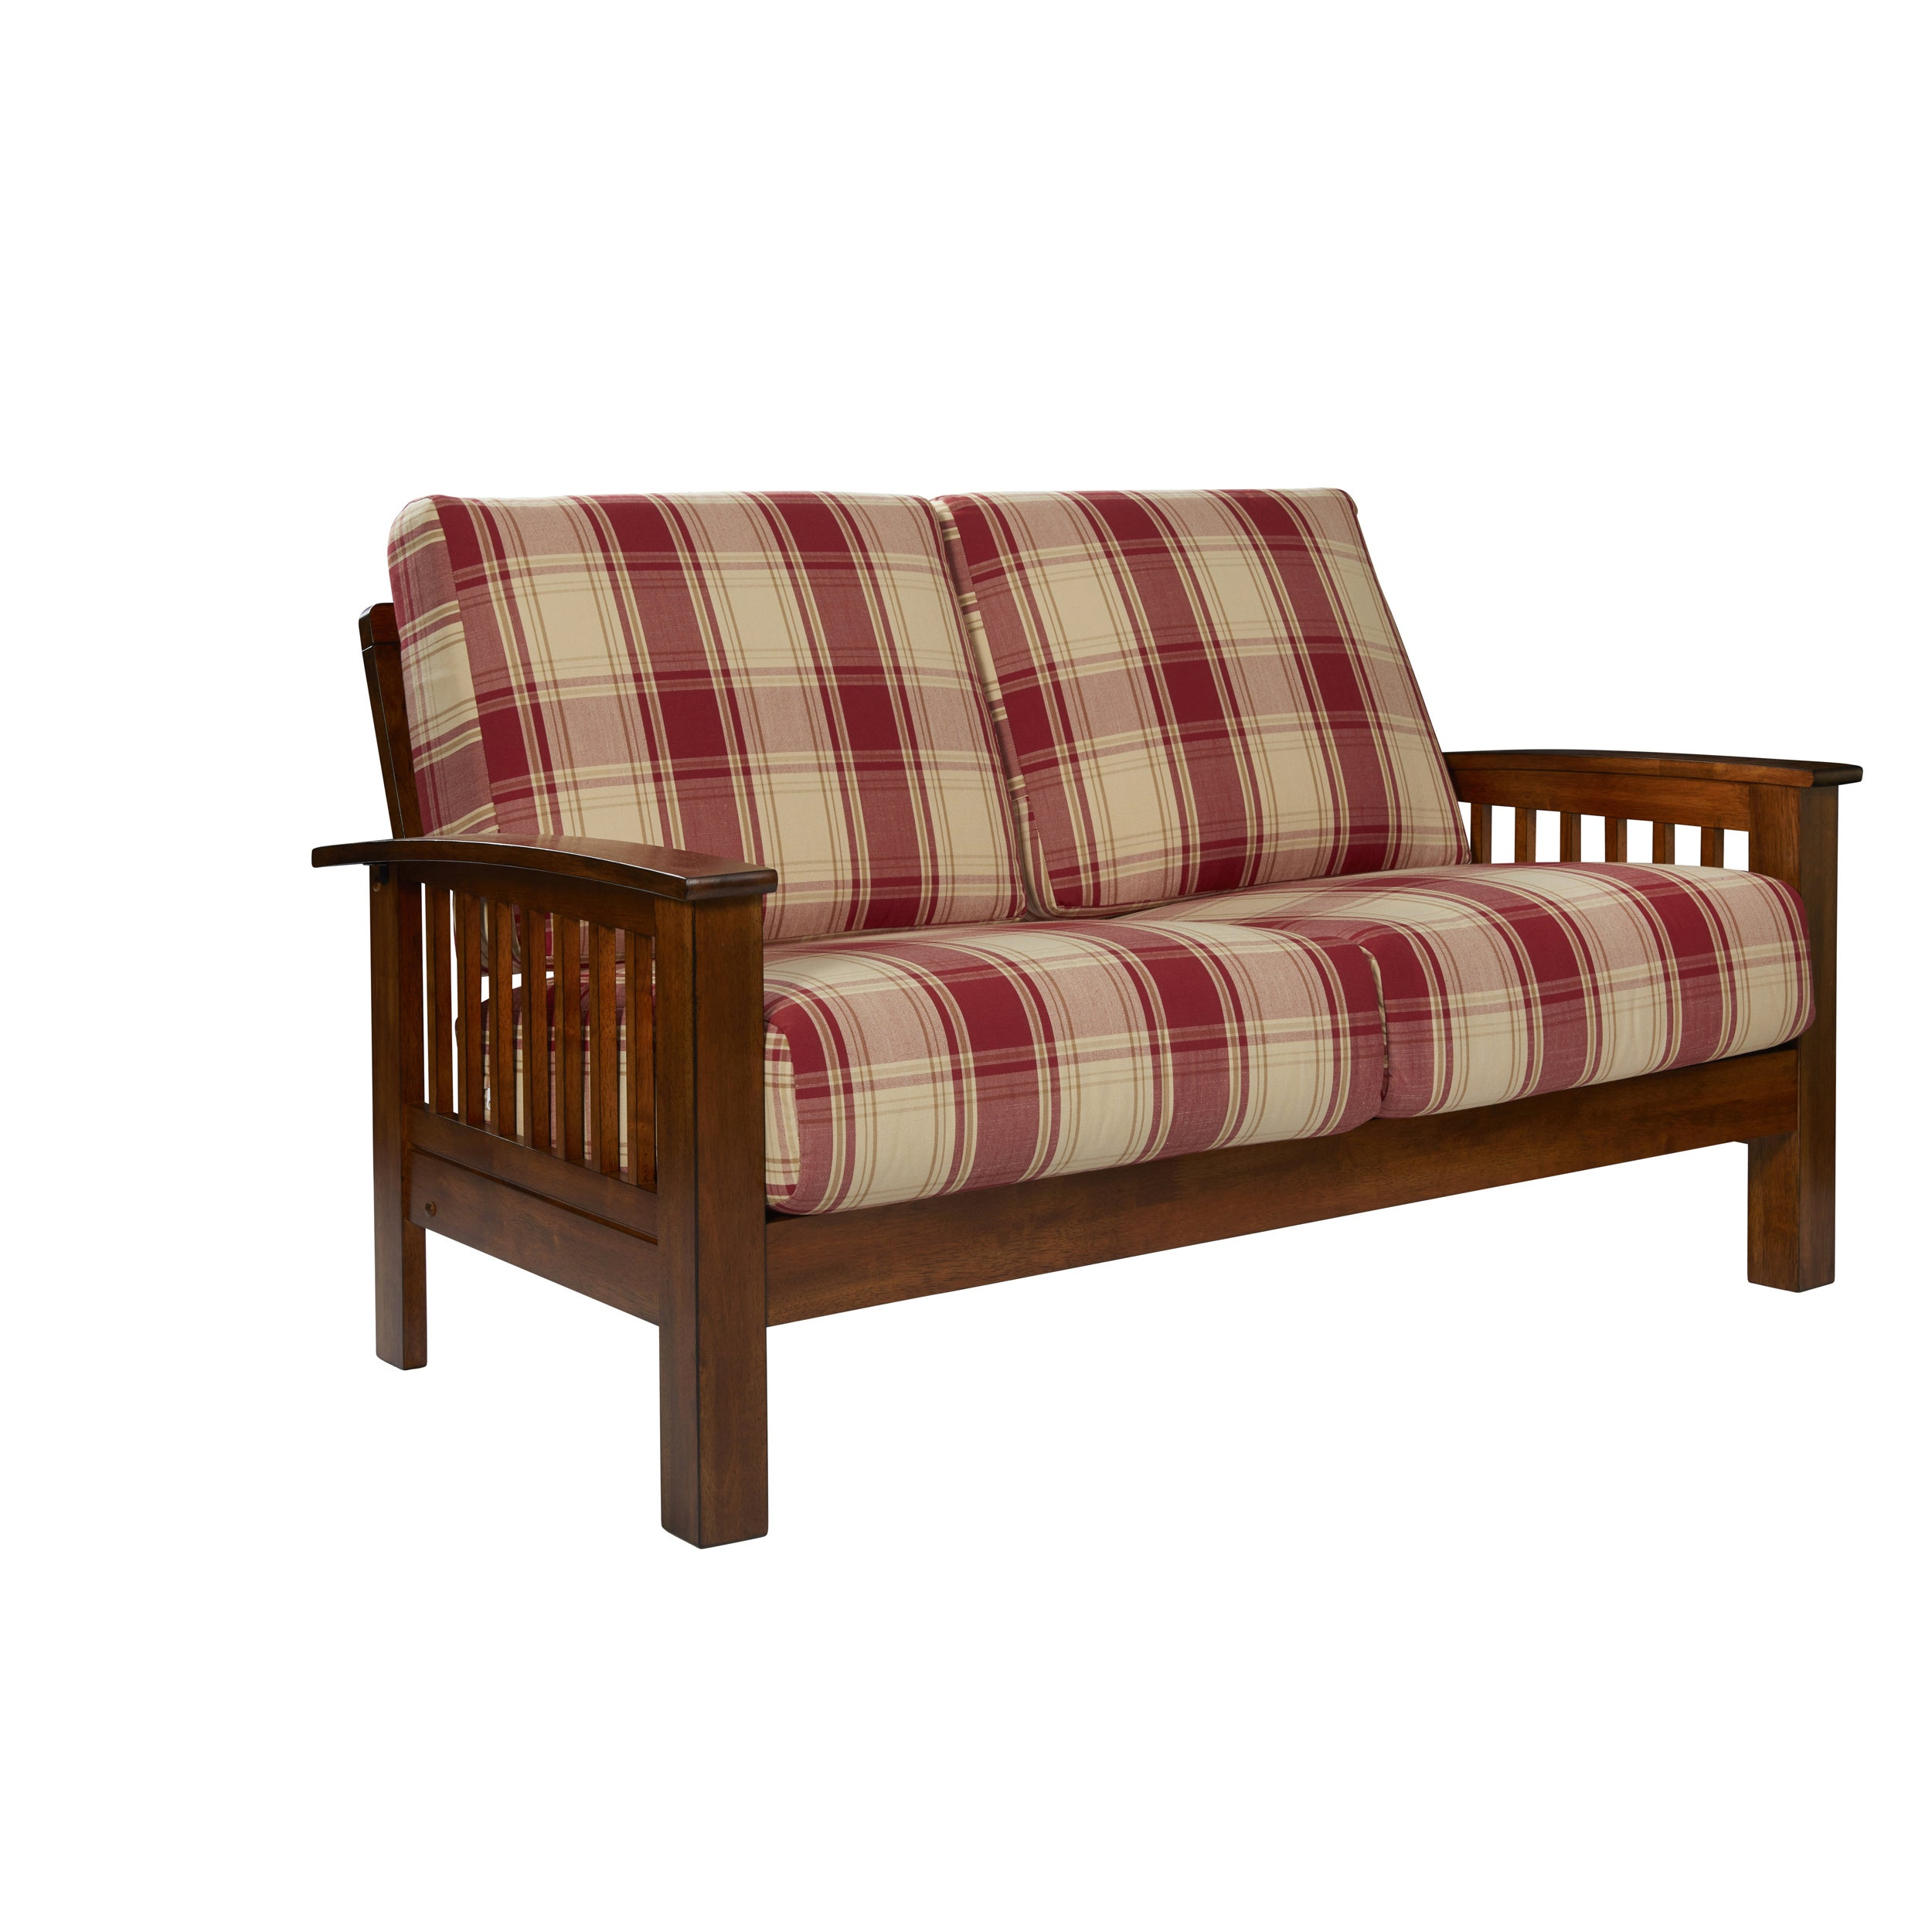 handy living omaha red plaid mission style loveseat with exposed wood frame free shipping today overstockcom 23791451 - Wood Frame Loveseat